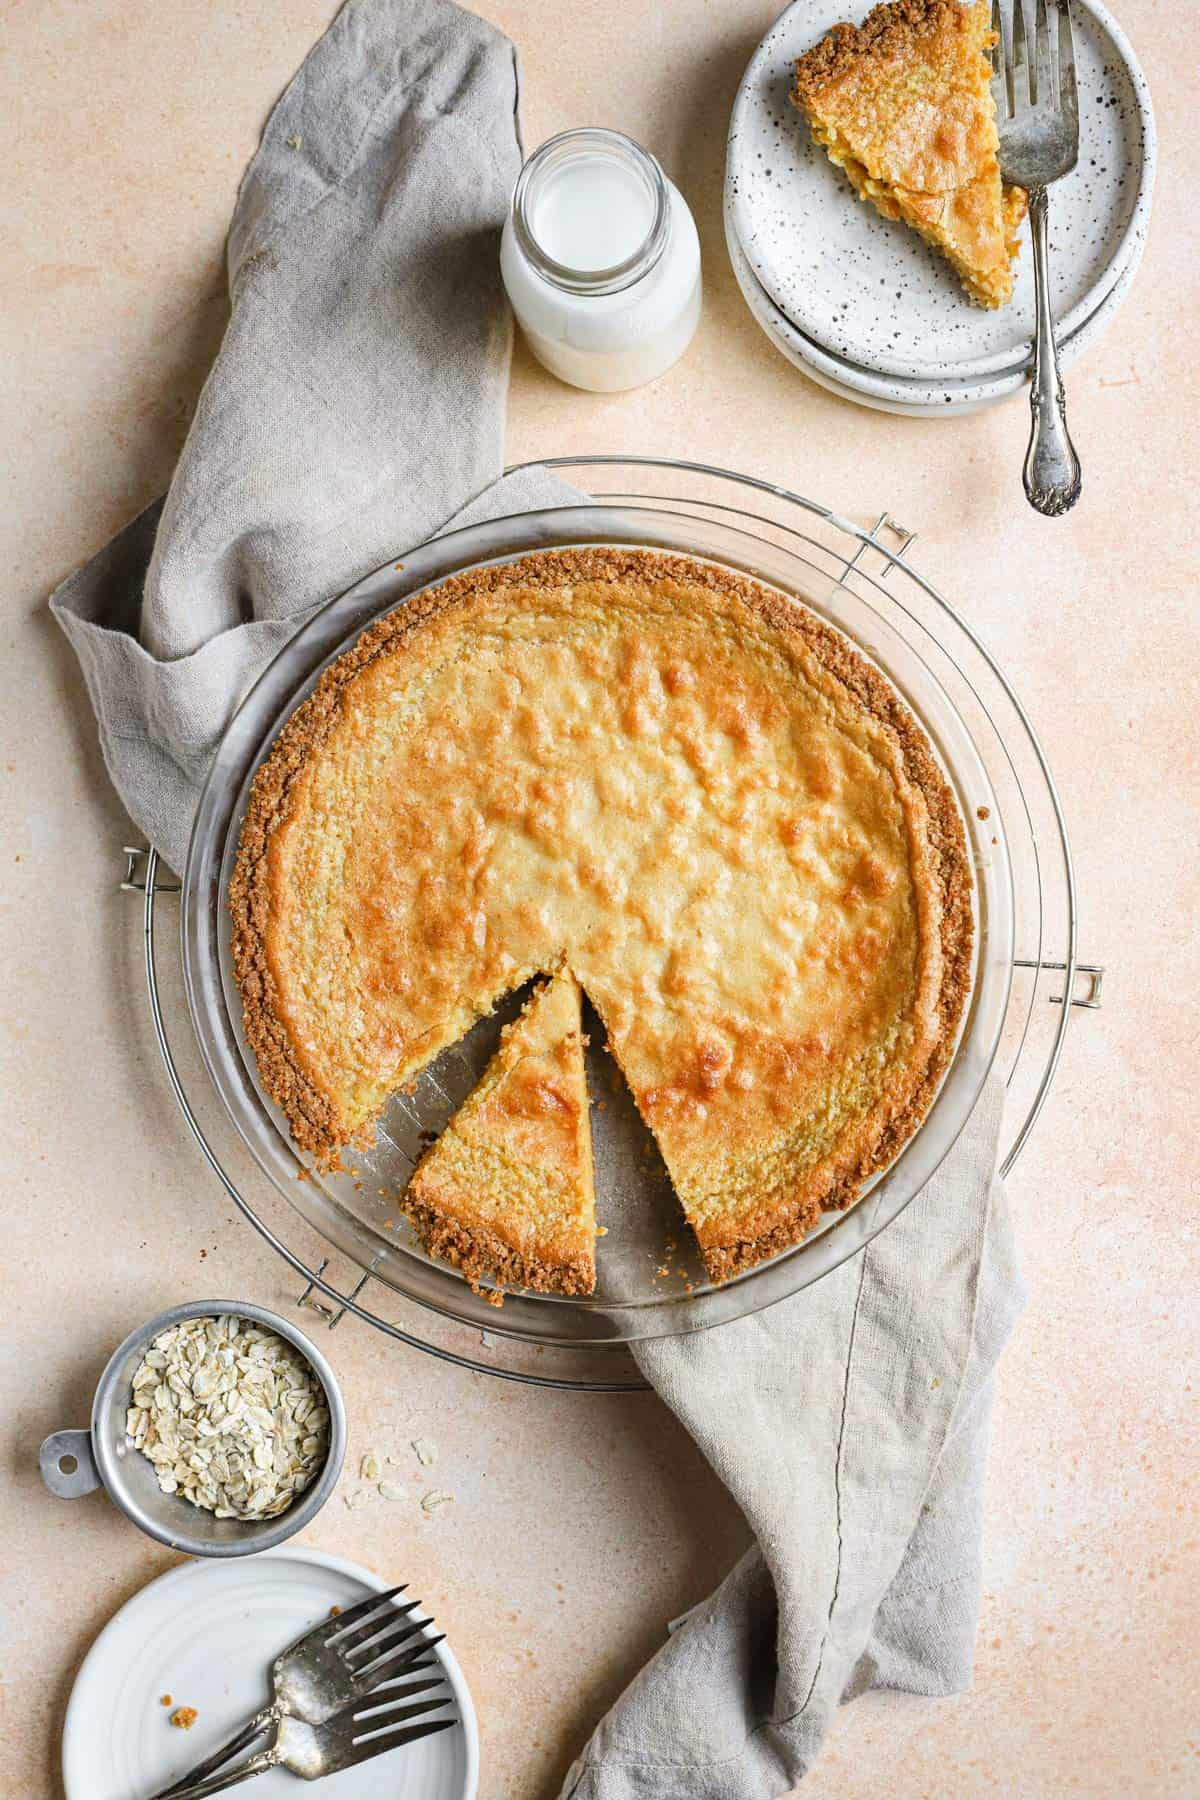 Crack pie on a round cooling rack with a slice on a plate in the top right and a slice cut out in the pie plate with a towel under the pie pan.